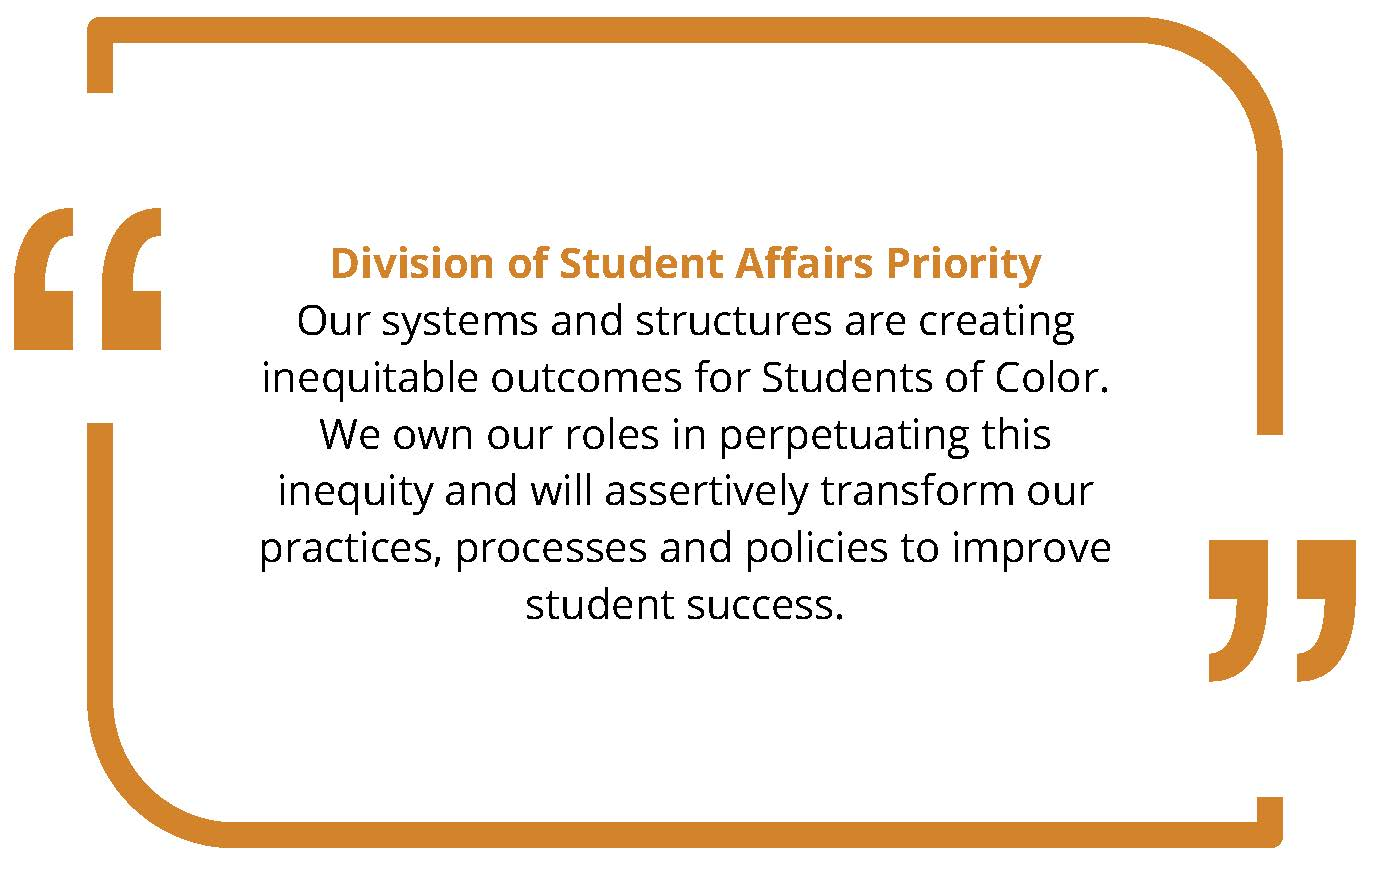 Visual showing a quote from the Student Affairs Priority